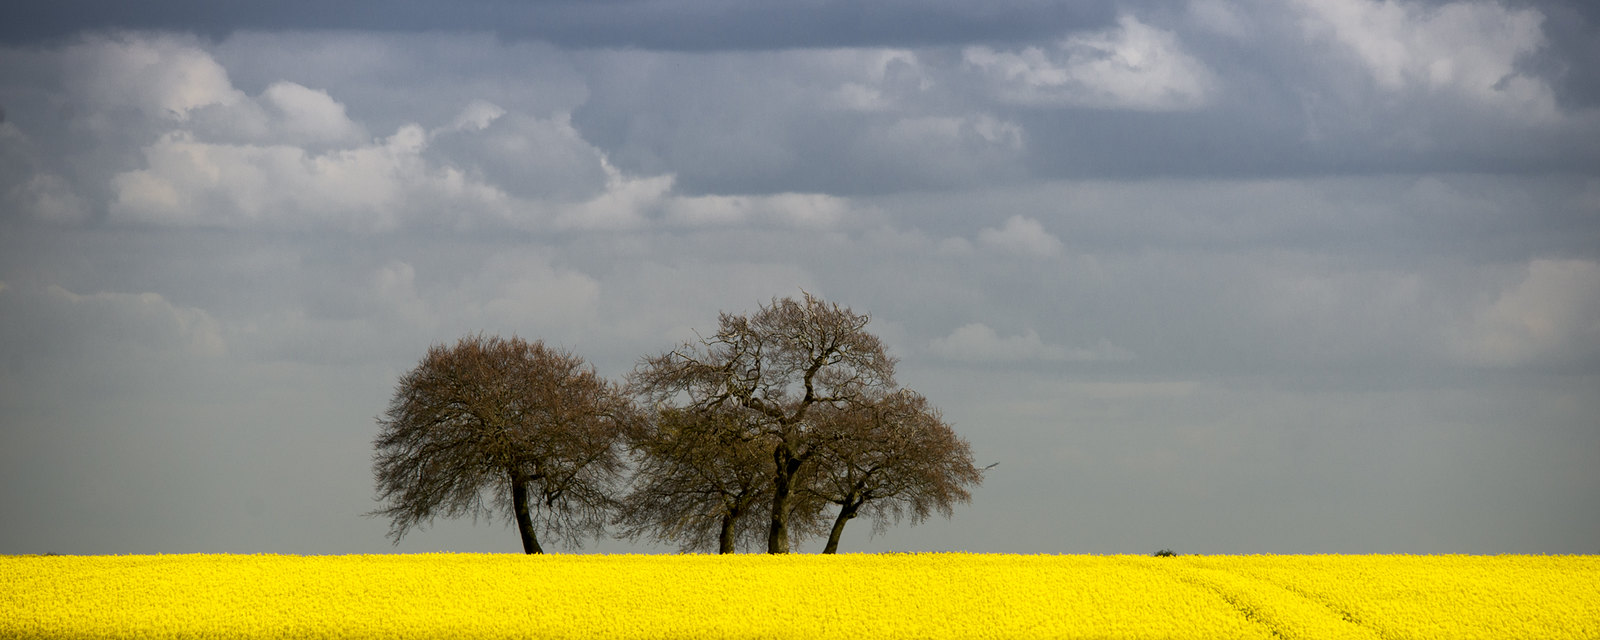 Trees on the ridge of a carpet of yellow